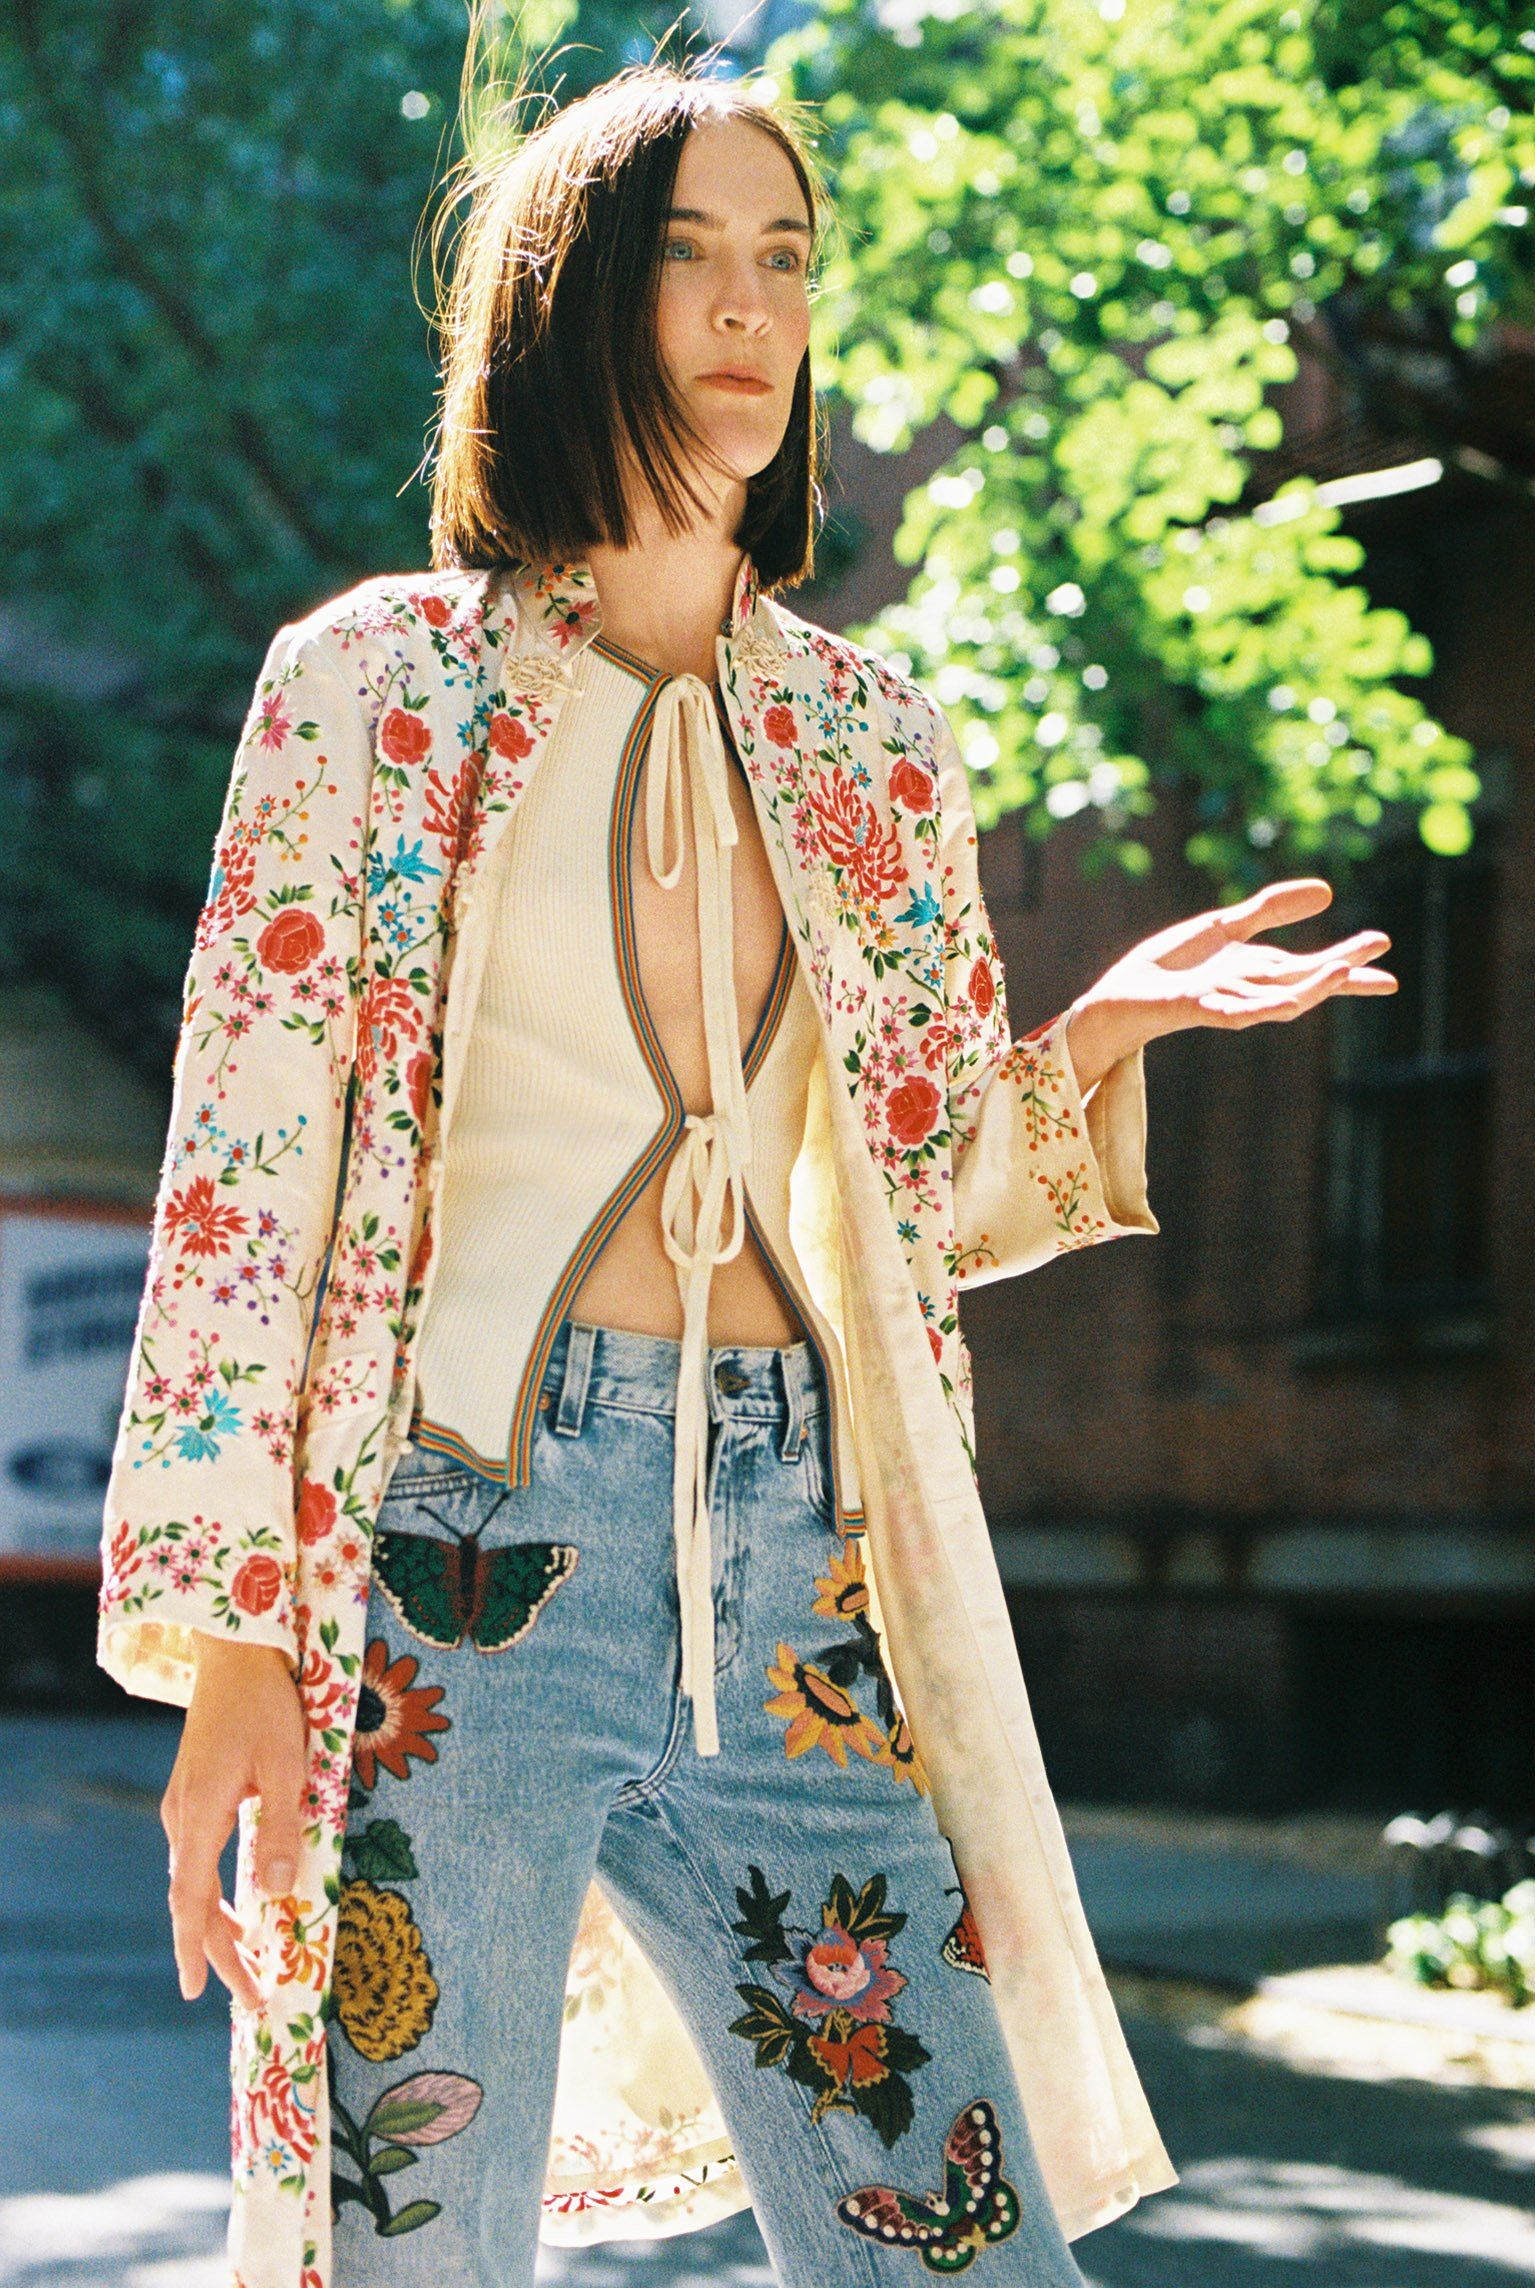 106c19031 Jane Moseley in a vintage kimono, vintage tie top, and Gucci  hand-embroidered jeans